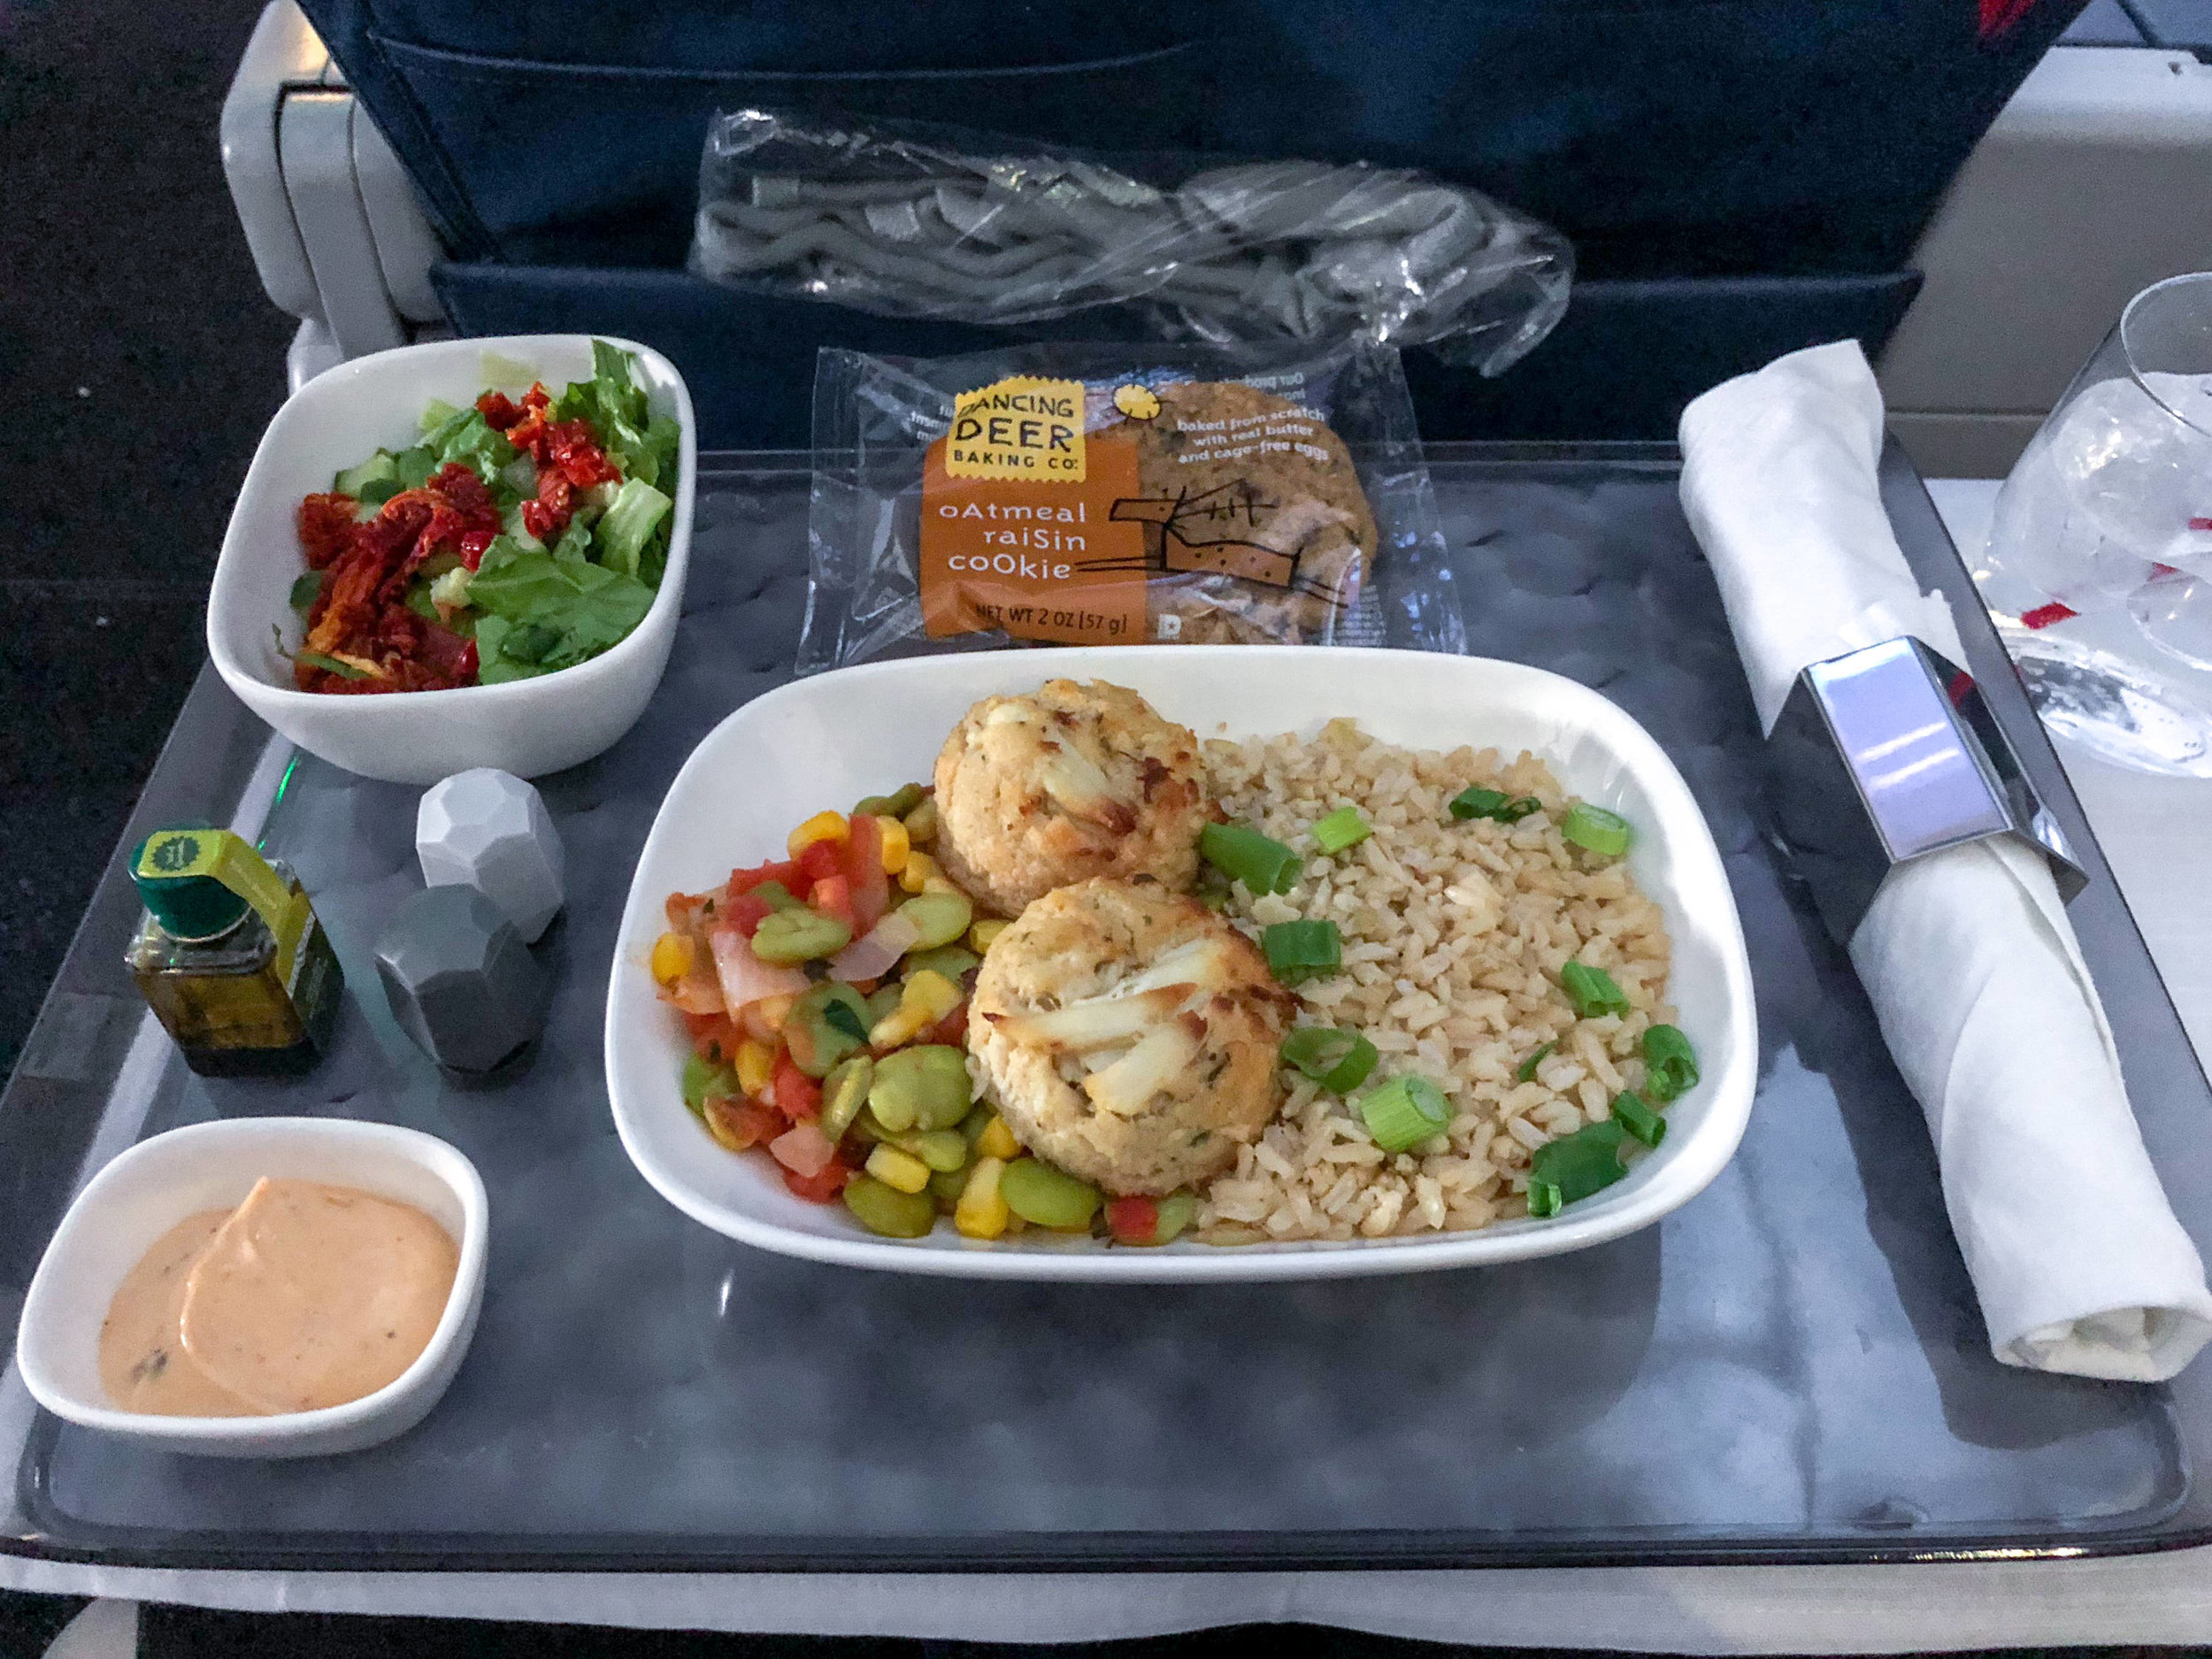 Warm Meal - Crab Cakes  Delta Air Lines First Class - MCO to JFK